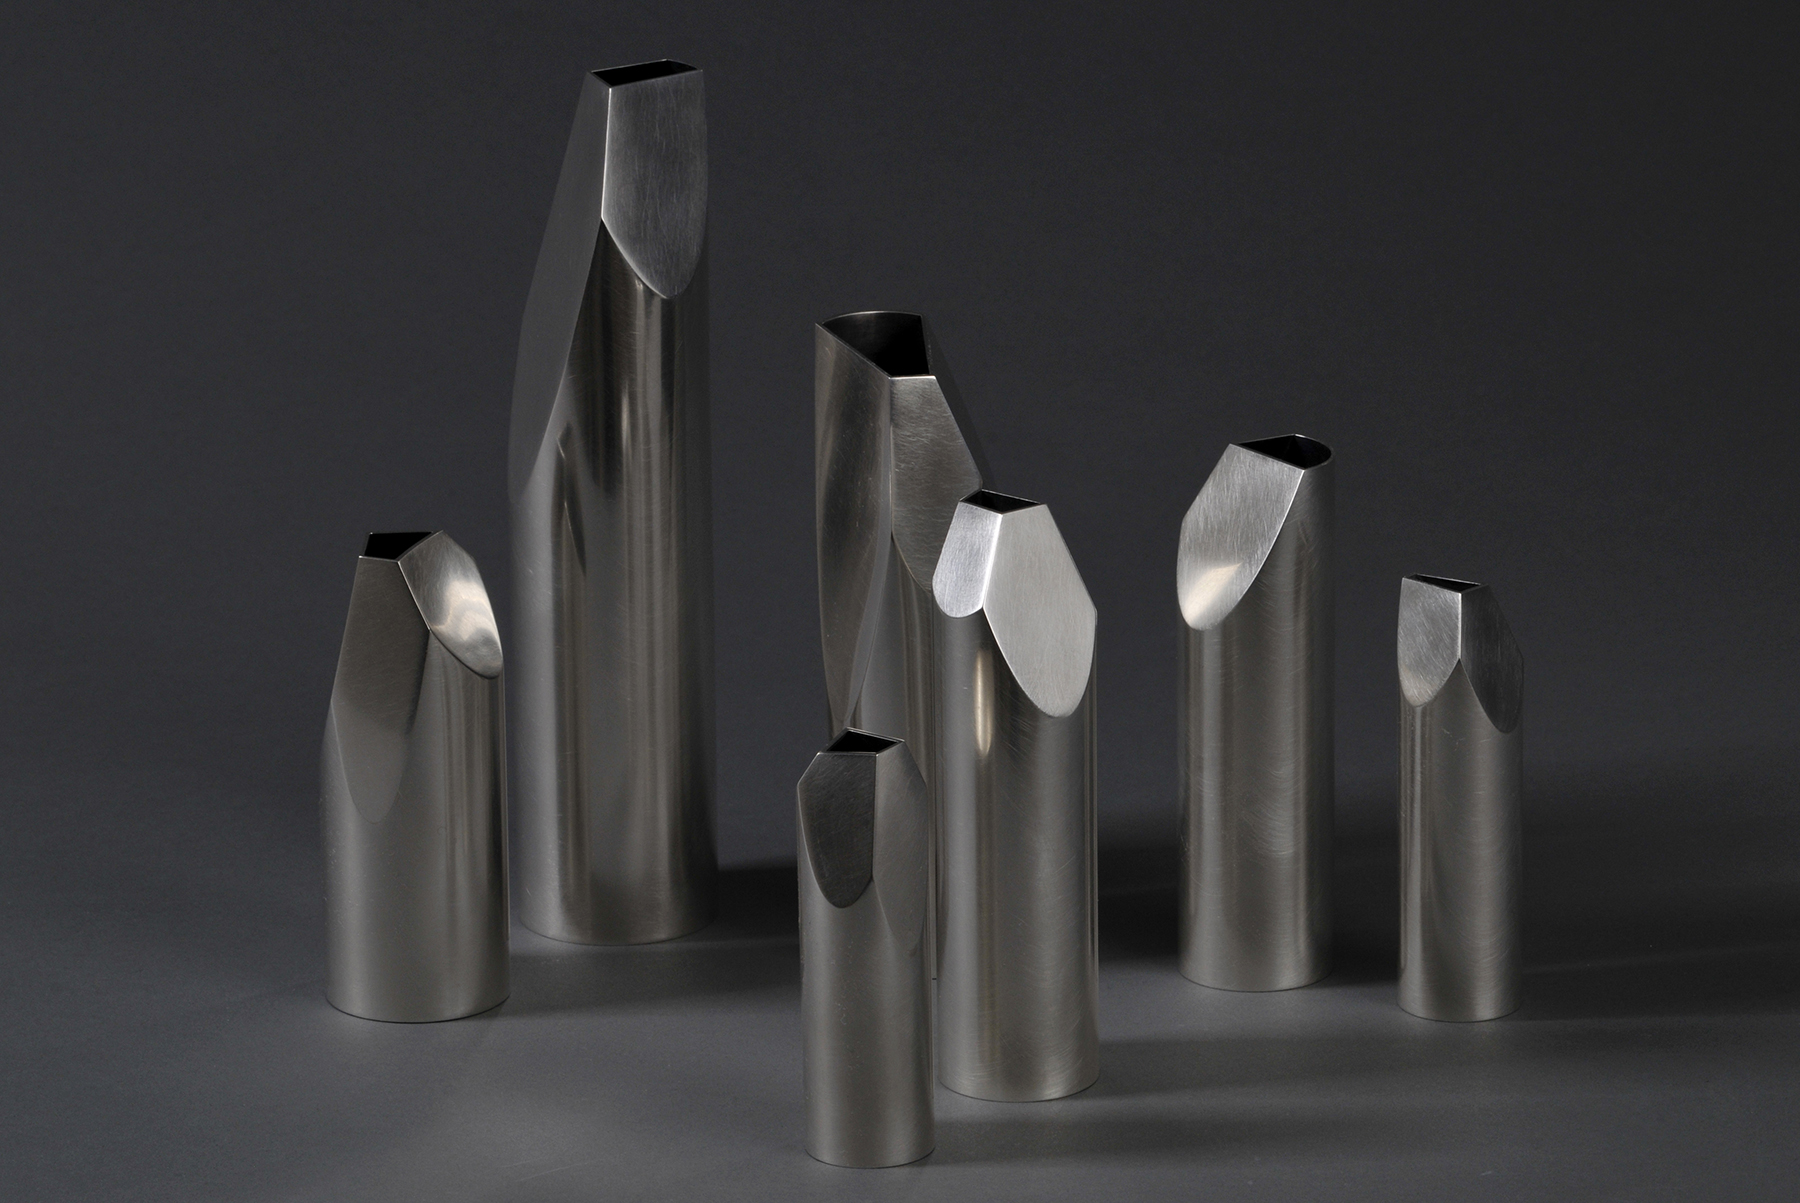 'Whittled Vases' in sterling silver